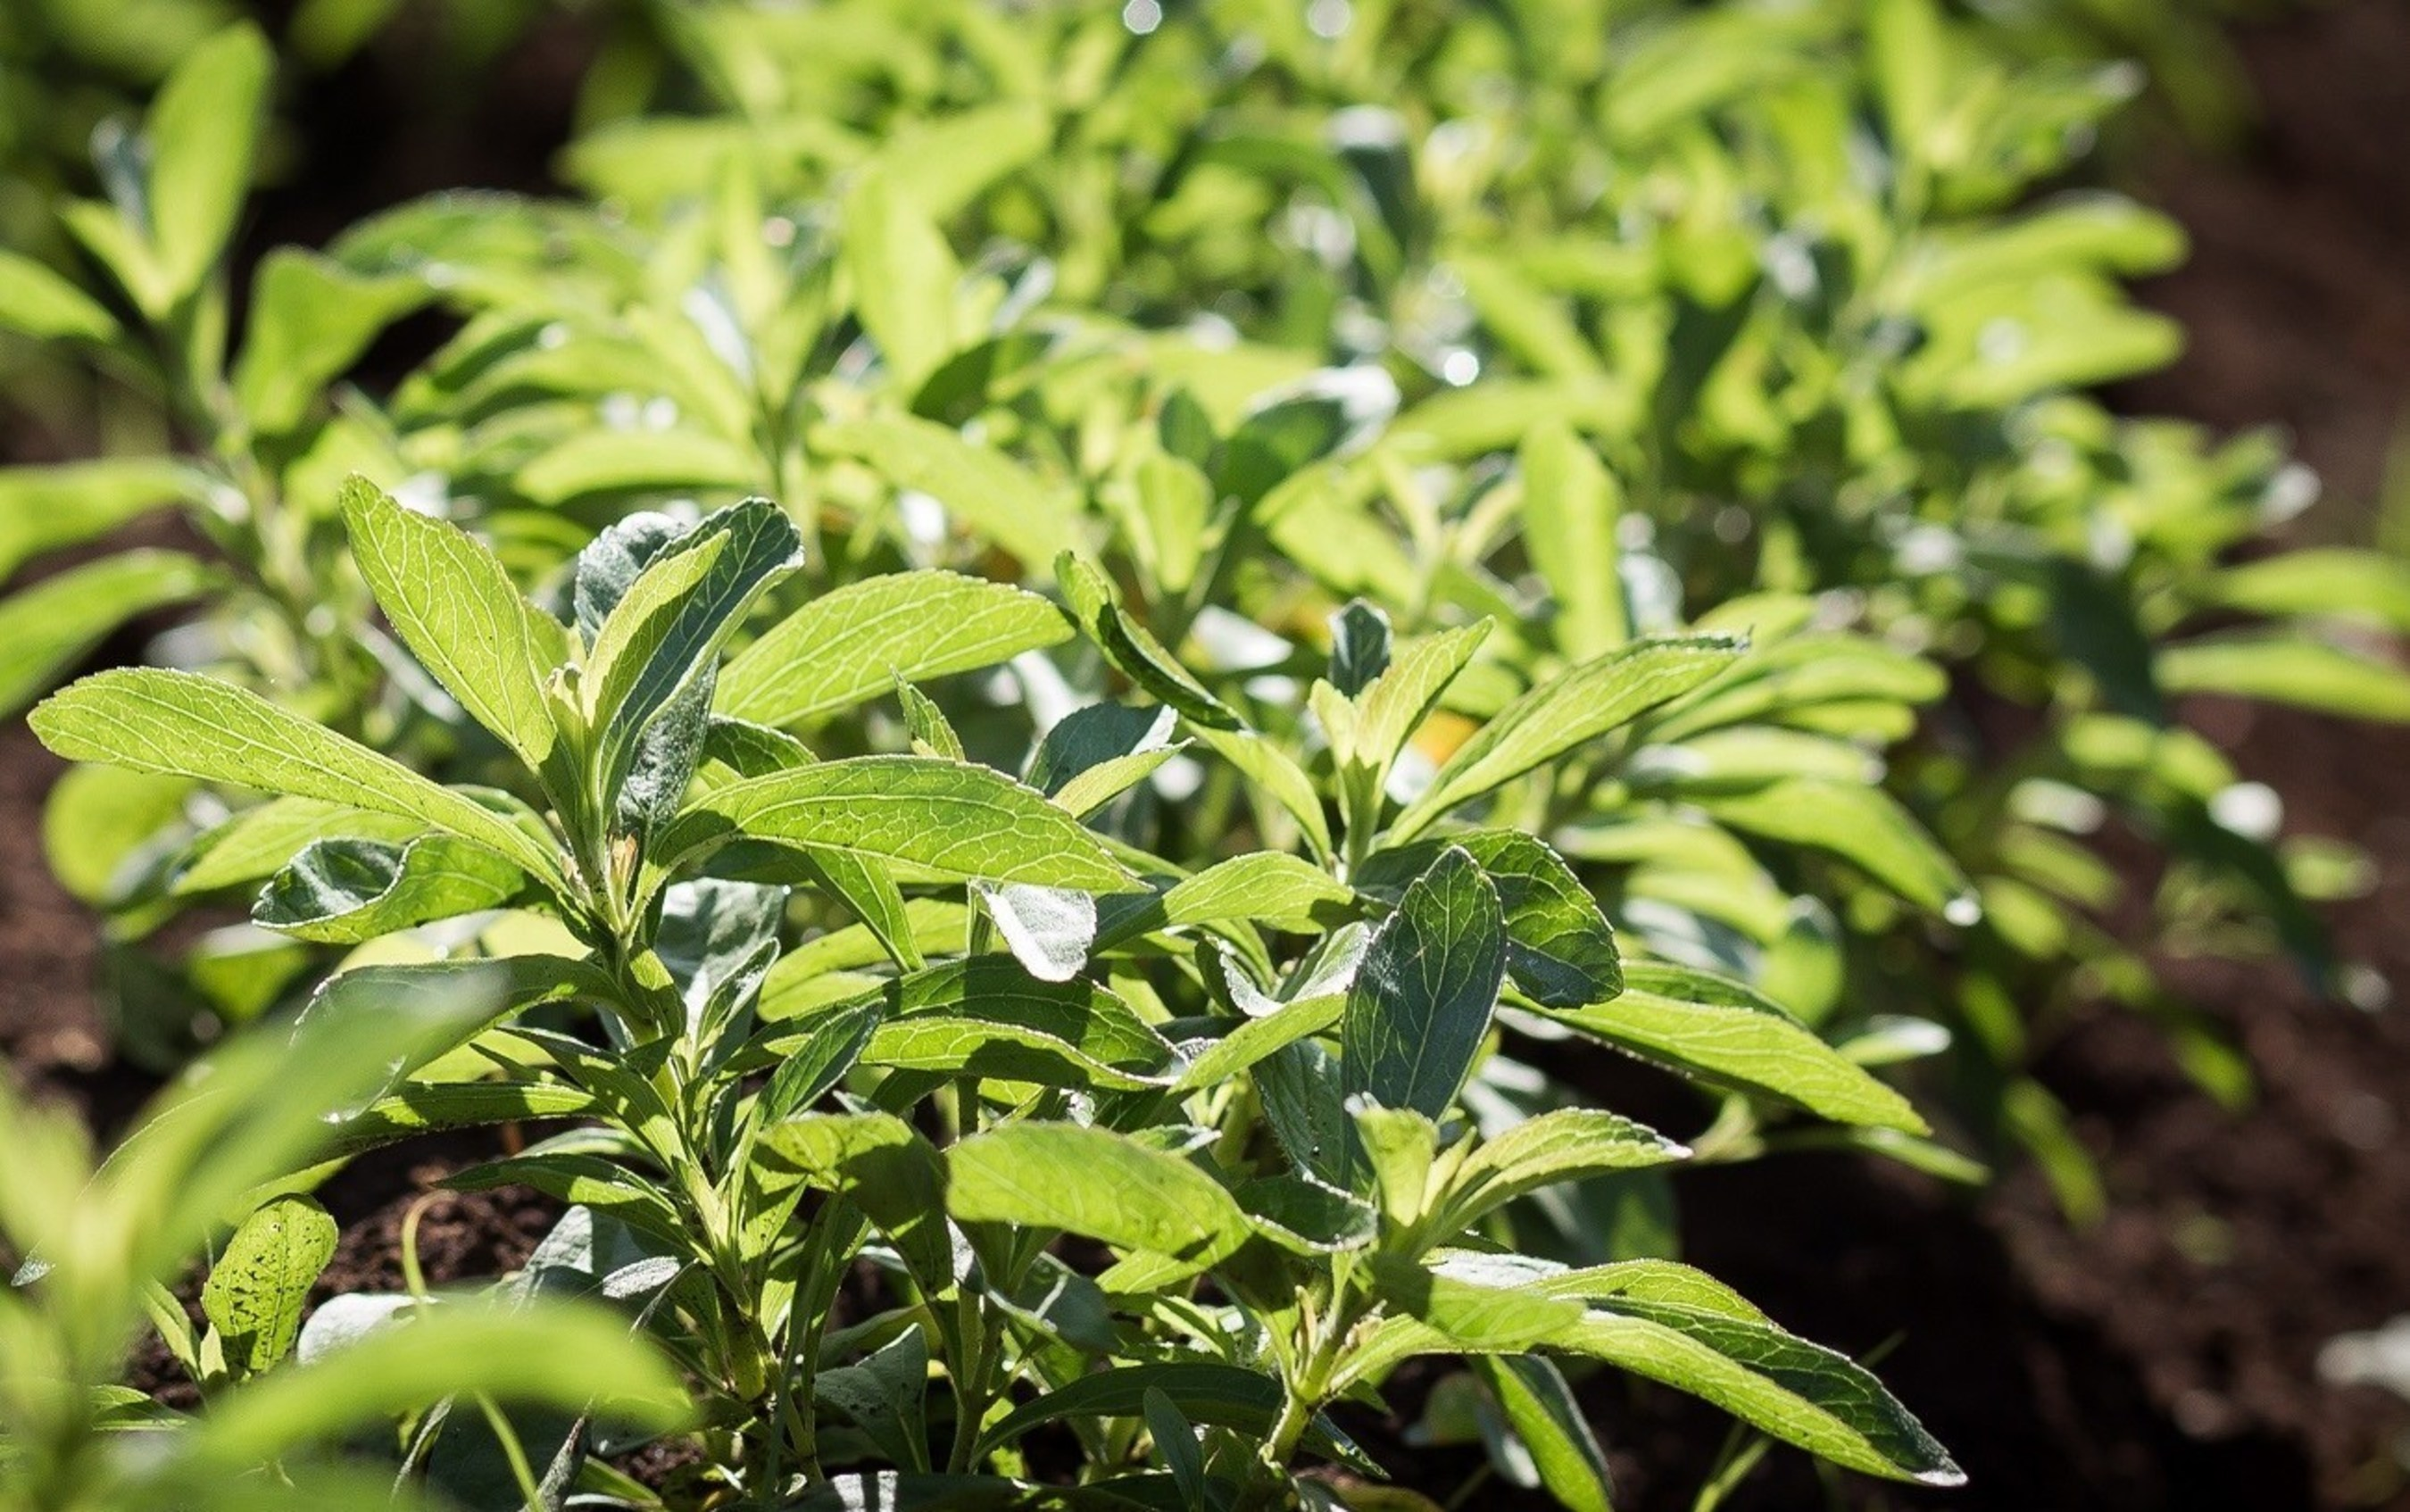 The stevia plant grows in a field in Kenya.